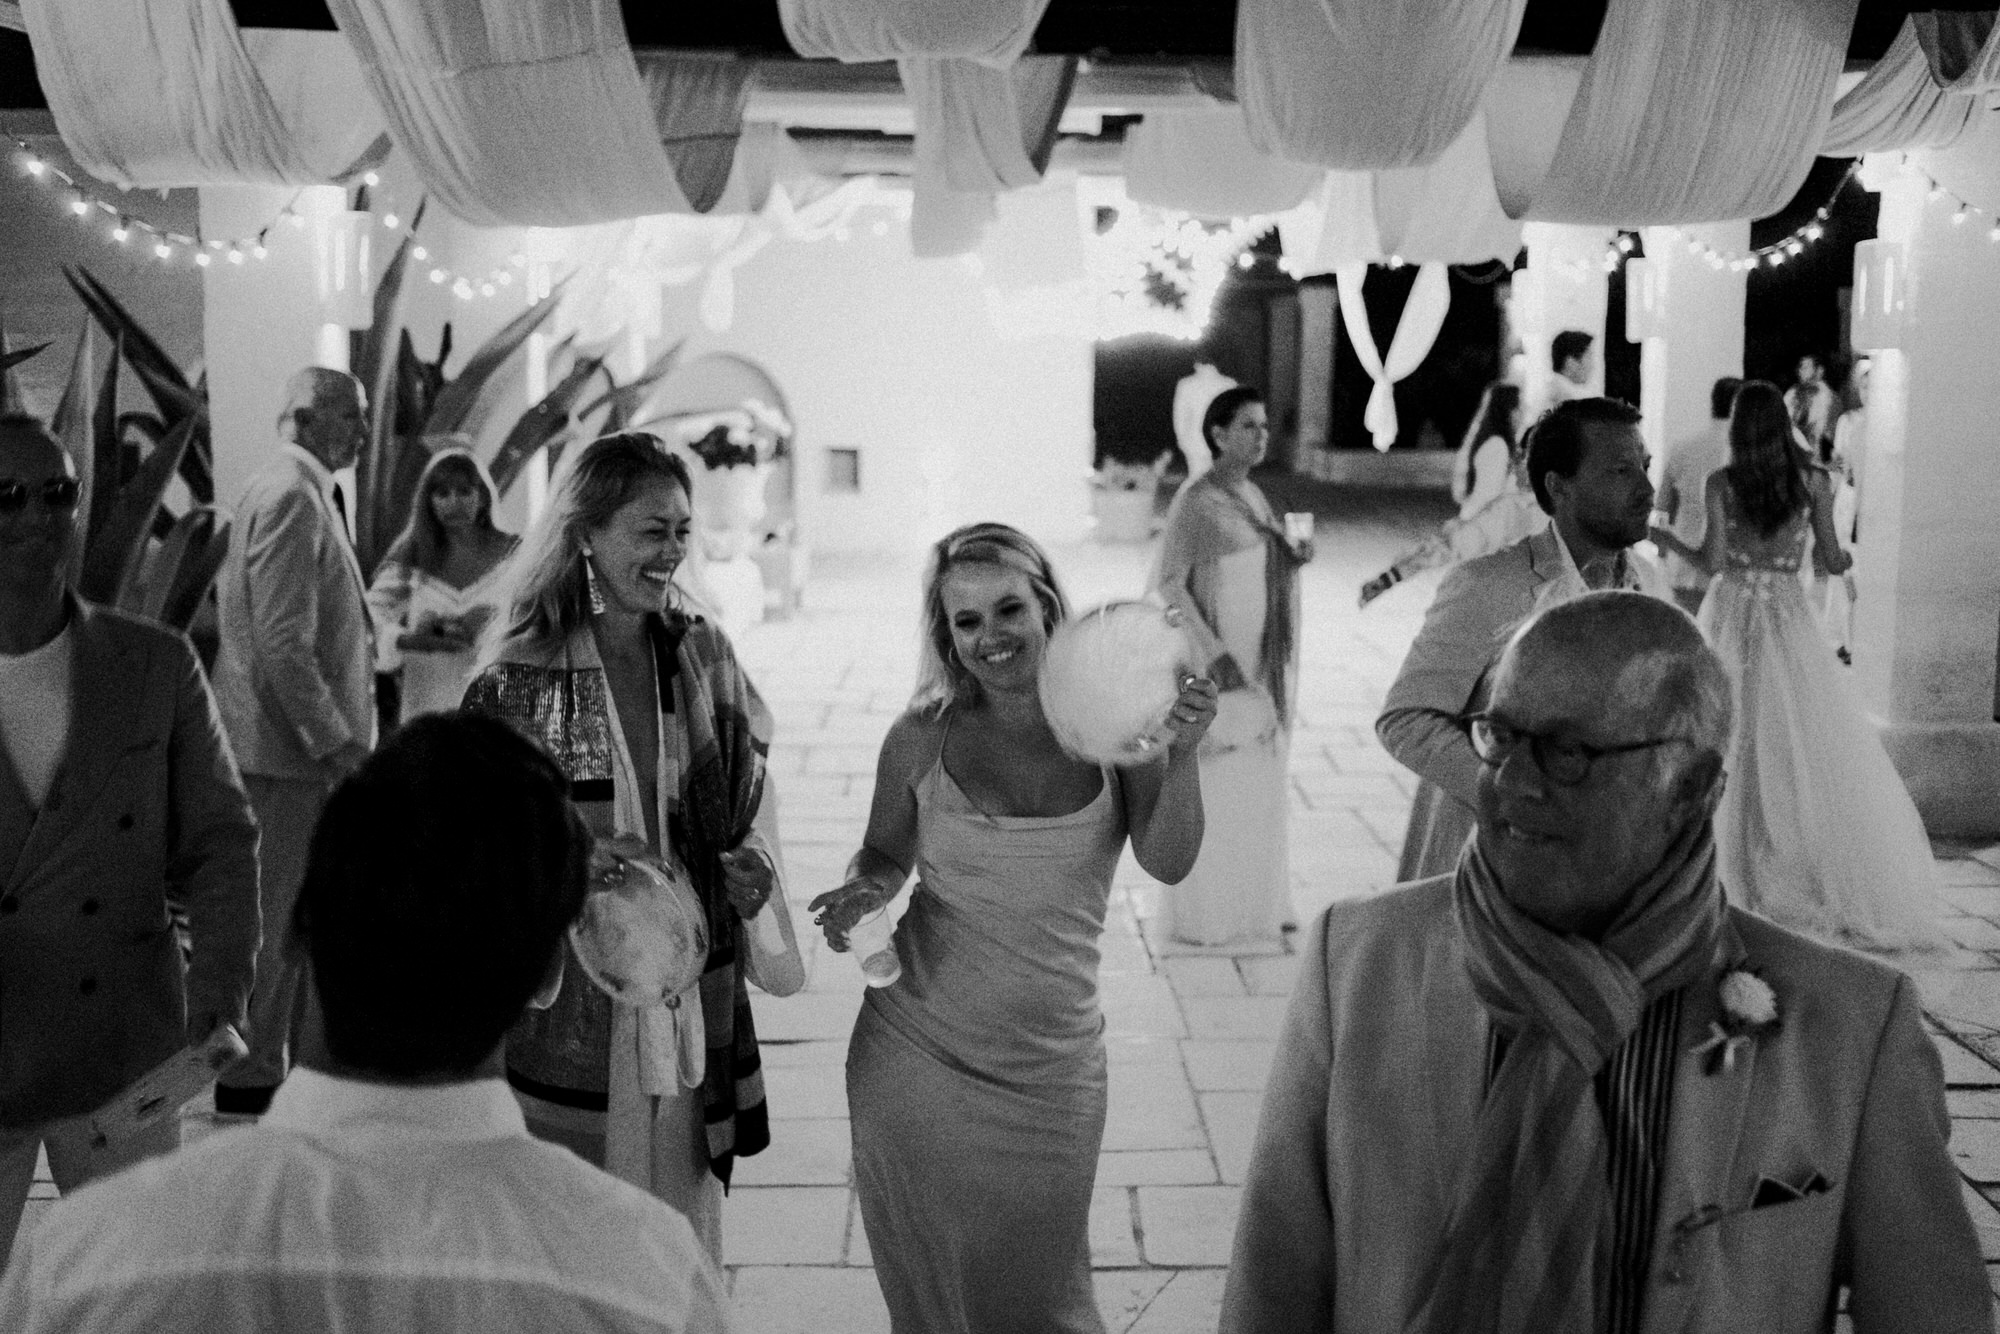 masseria-potenti-wedding-photographer69.jpg